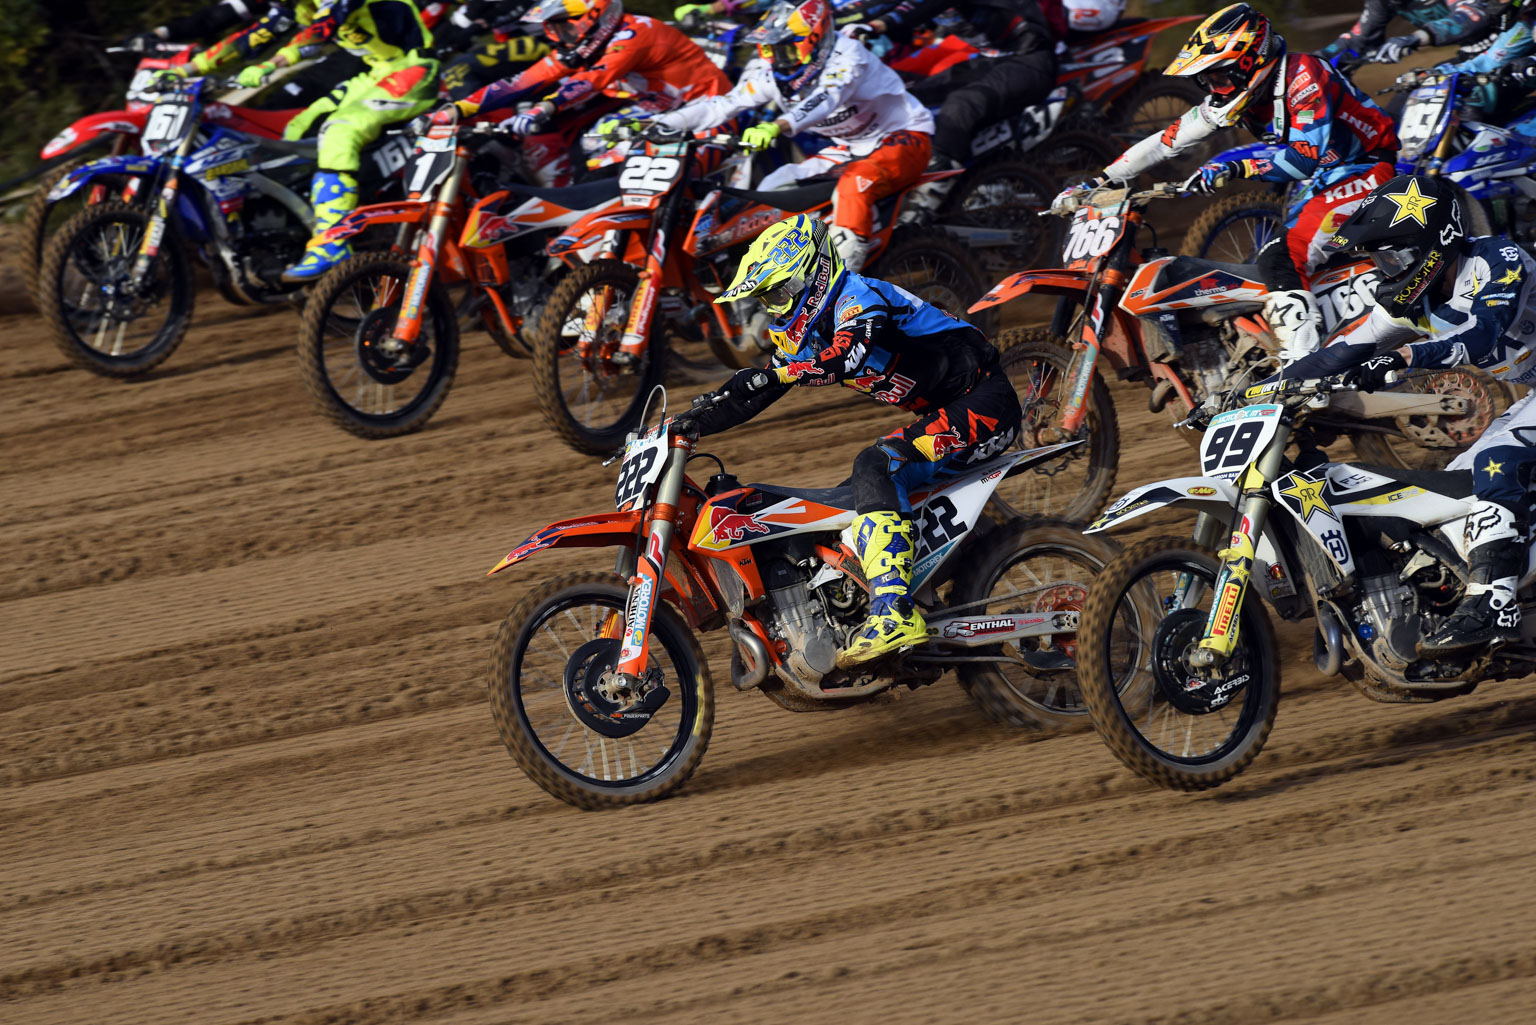 Tony Cairoli  takes the holeshot and won both motos